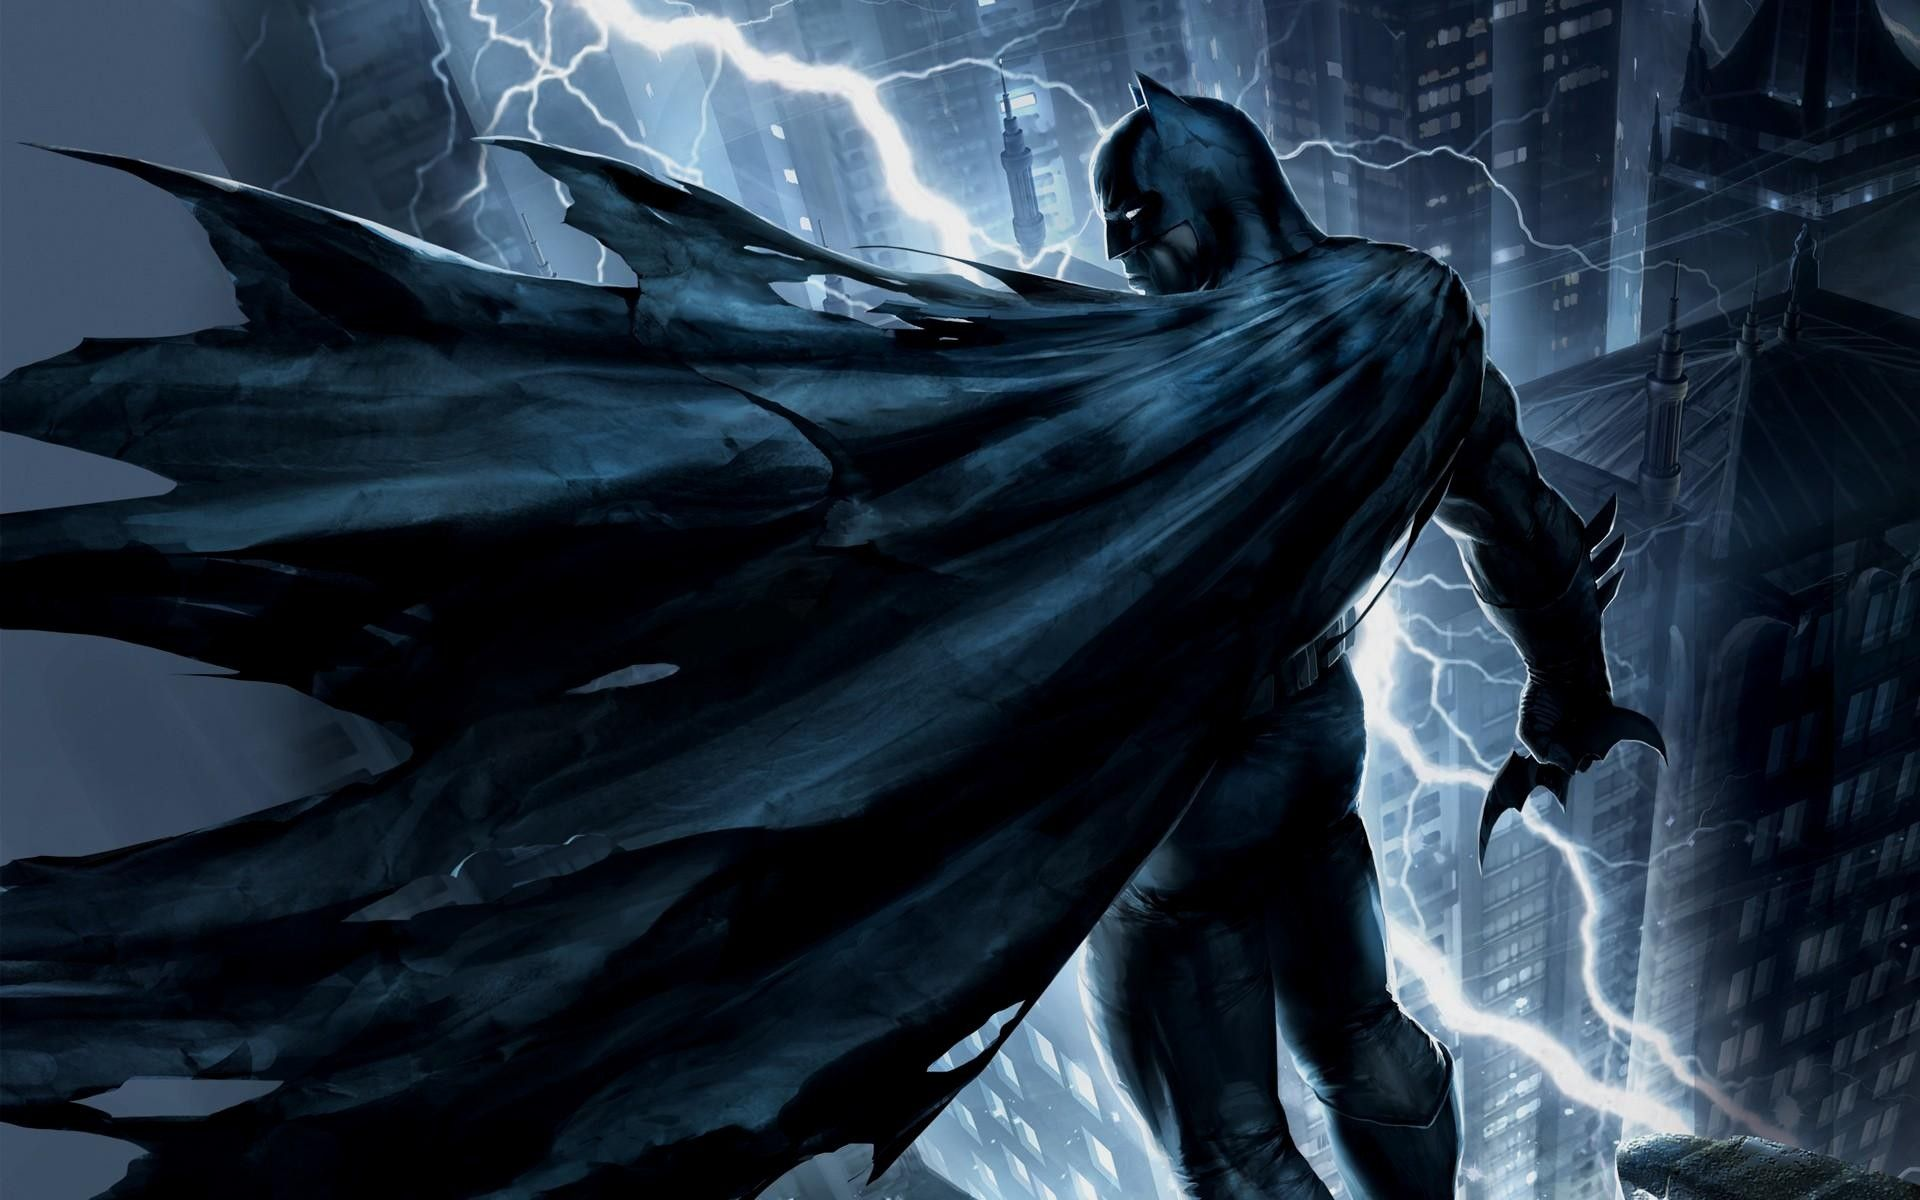 Batman O Cavaleiro Das Trevas Parte 1 Wallpapers Filme Hd